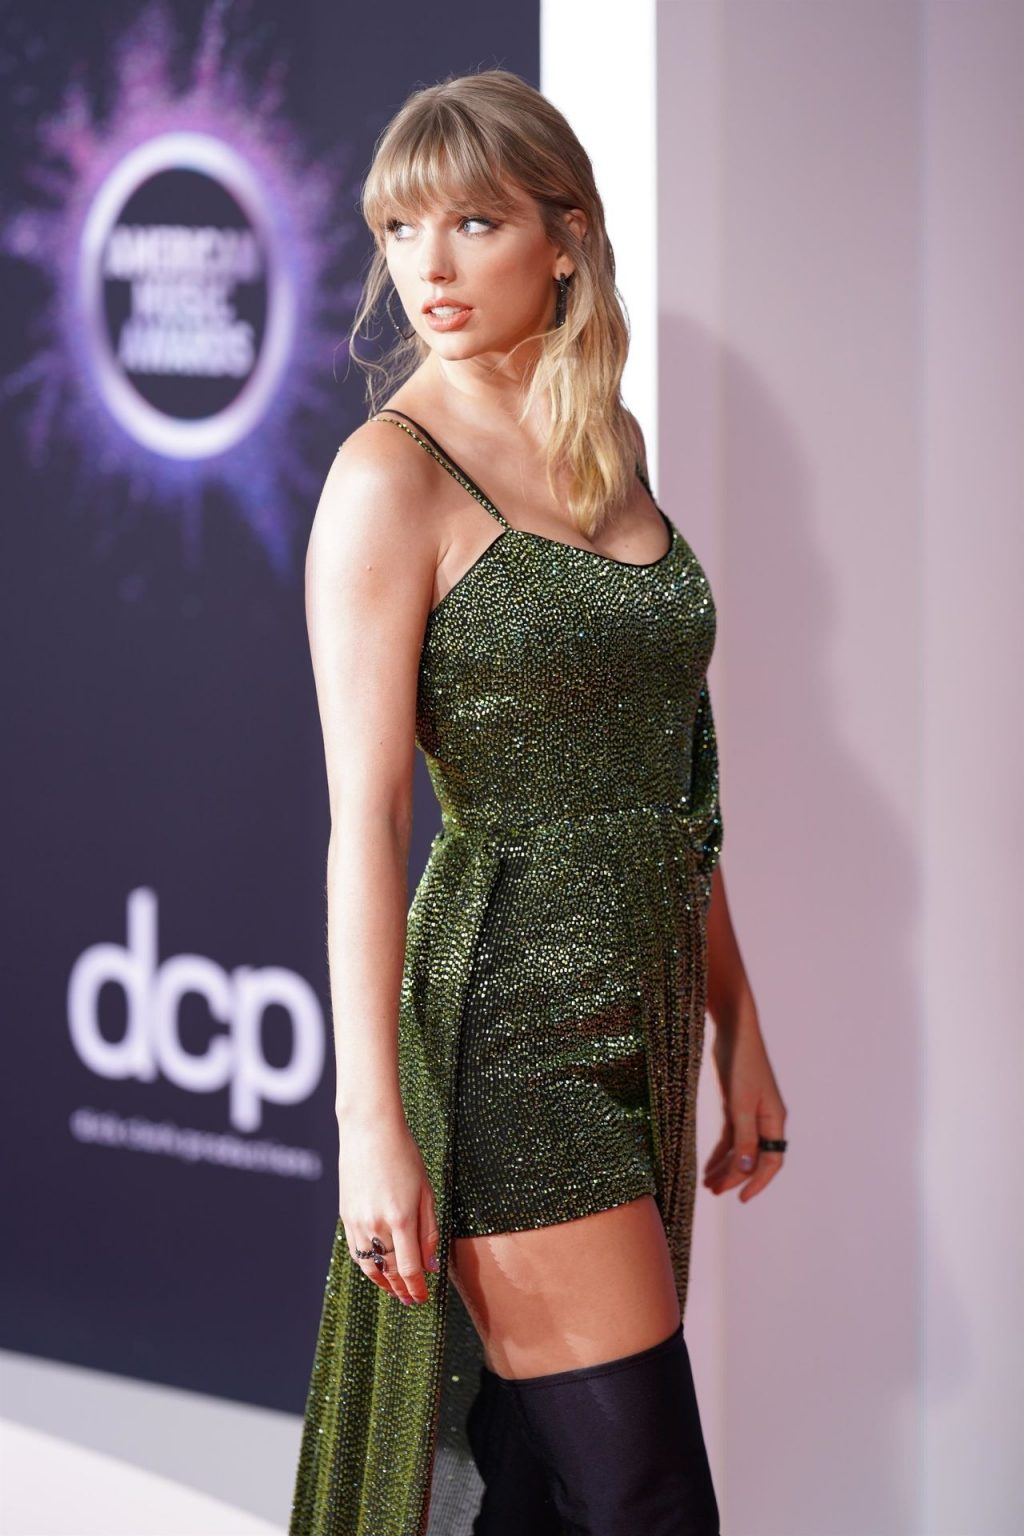 Taylor Swift Sexy (110 Photos)